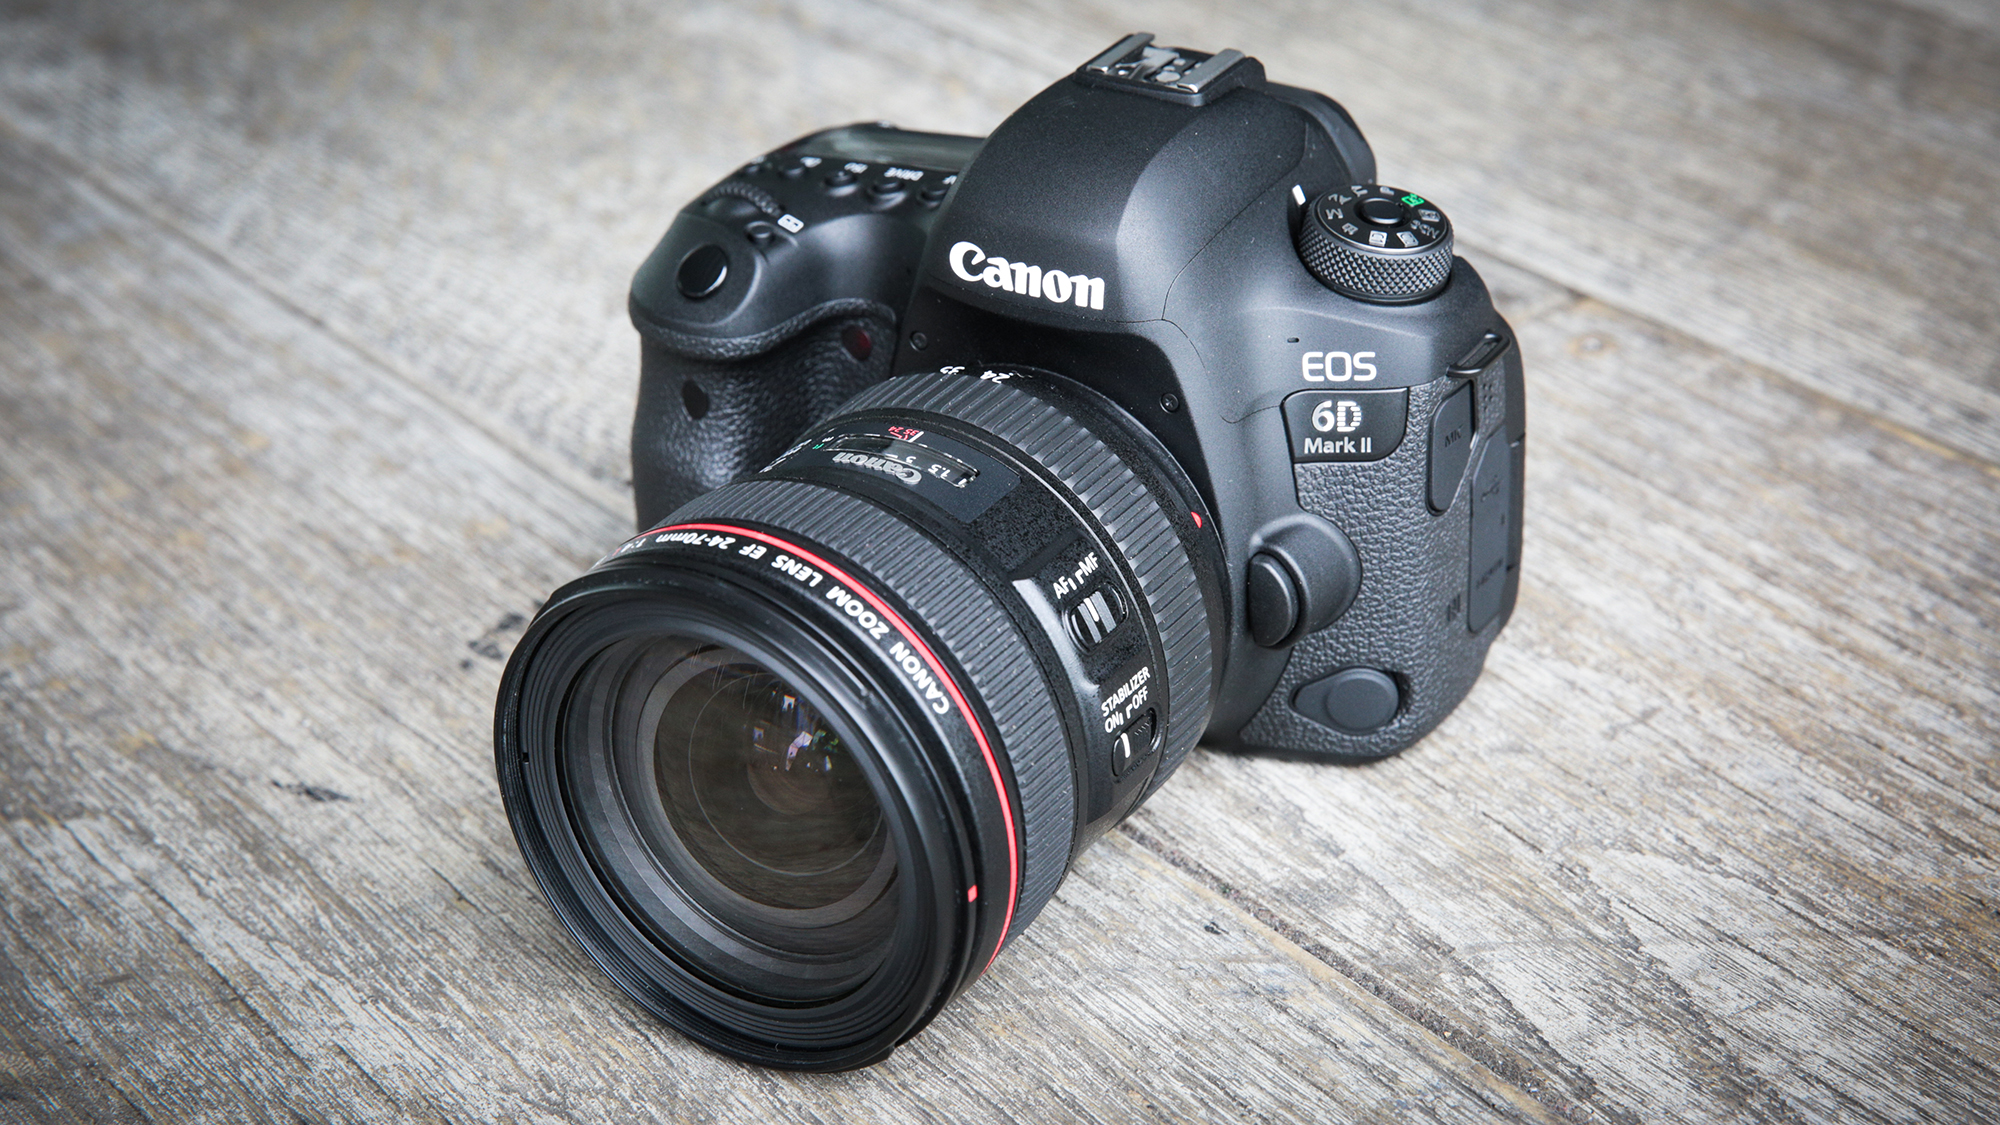 Canon EOS 6D Mark II  full frame camera launched